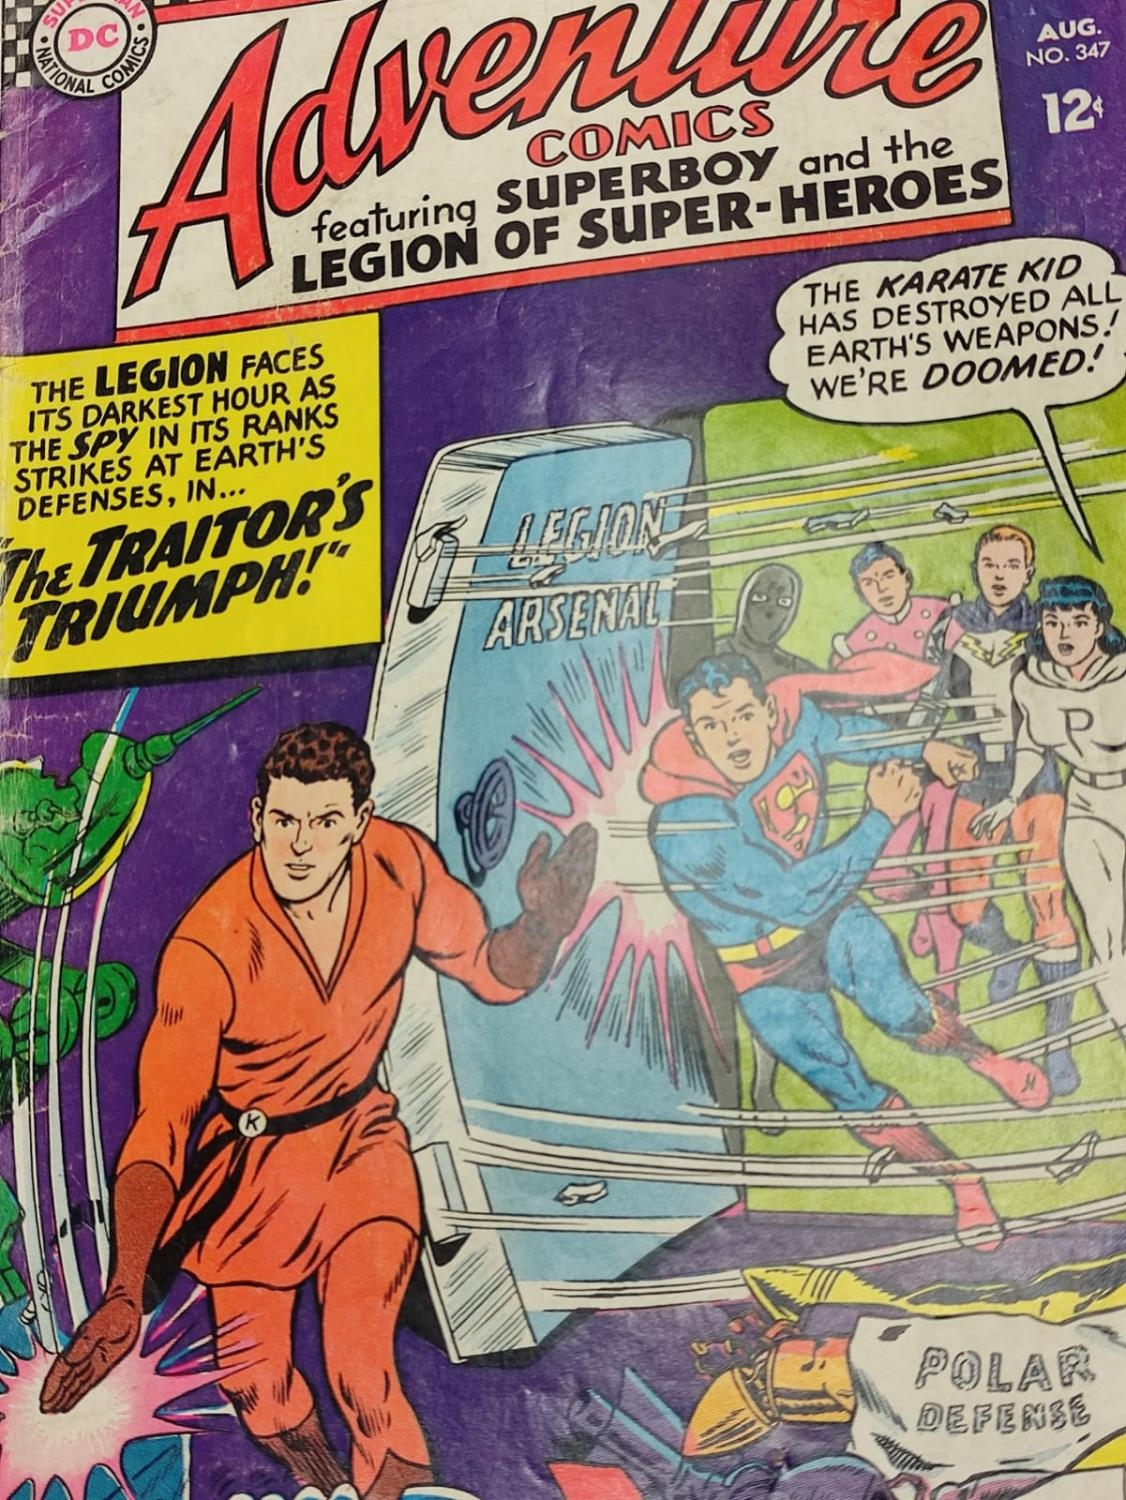 5 editions of DC Adventure Comics featuring Super-boy. - Image 3 of 19